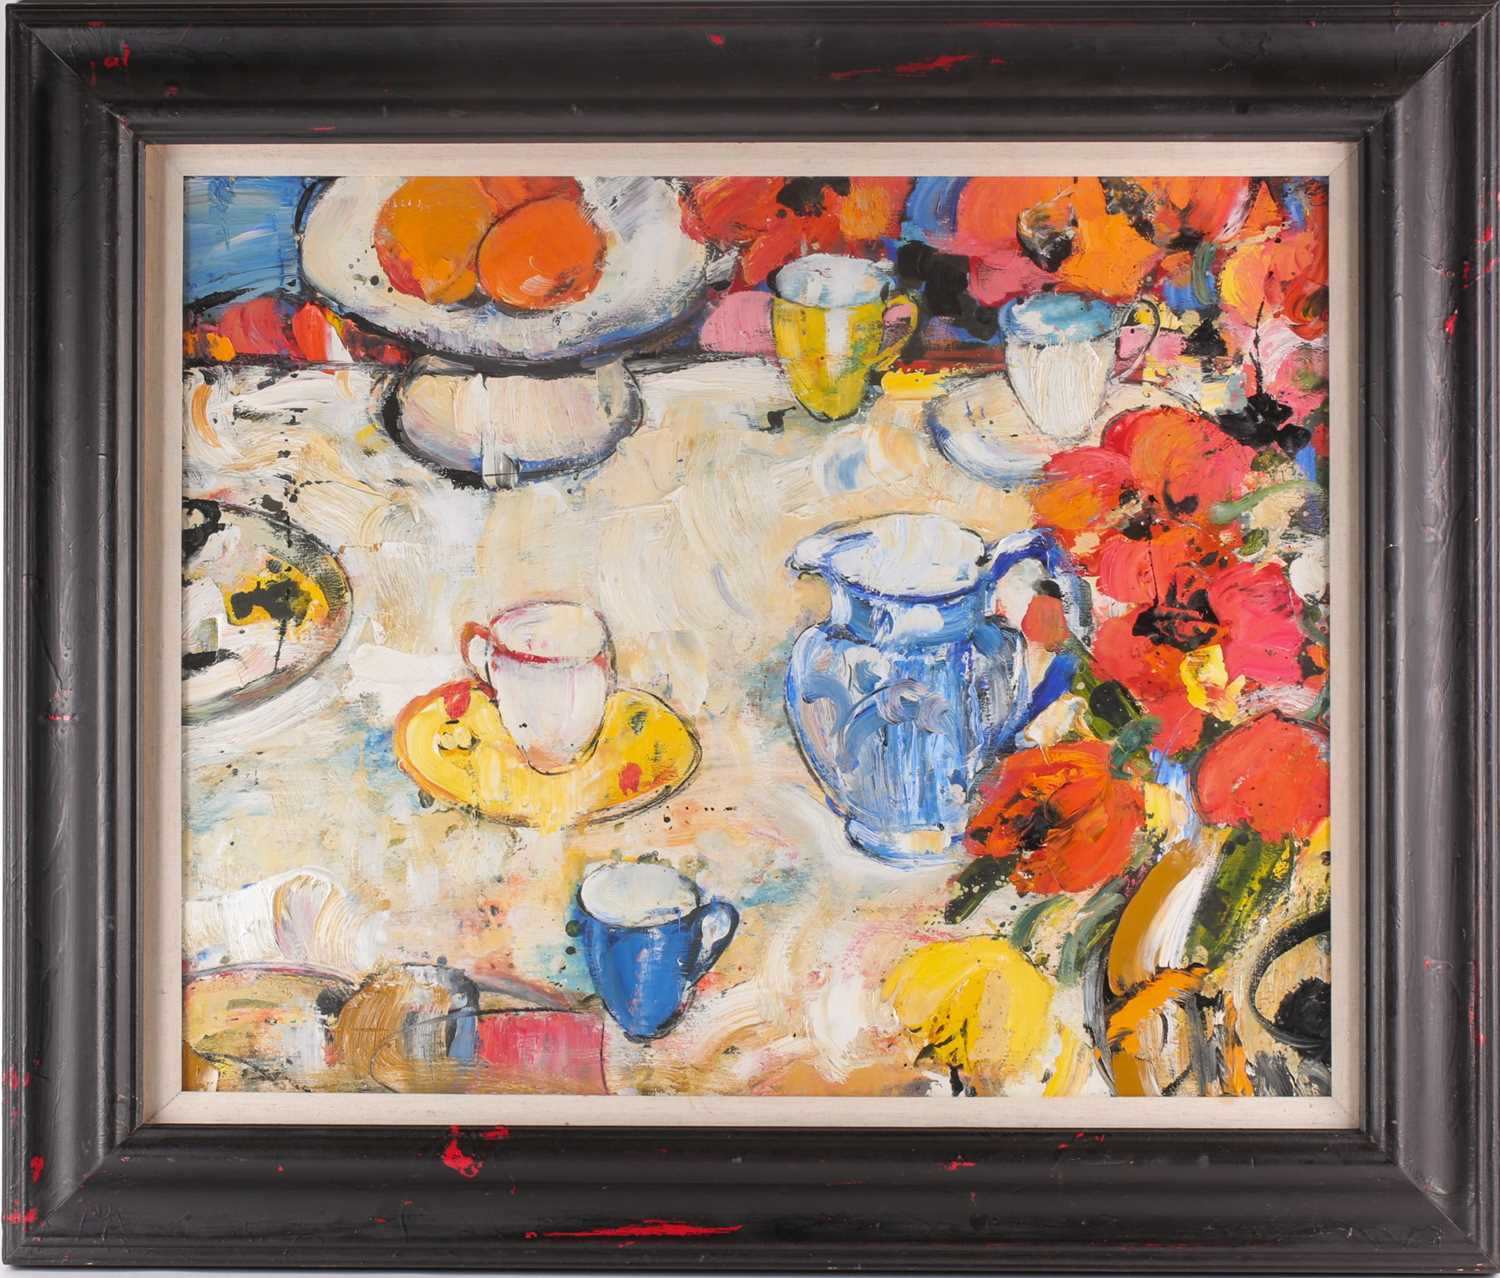 Peter Mclaren, (B. 1964), Still life with blue cup and blue jug, oil on board, signed and titled